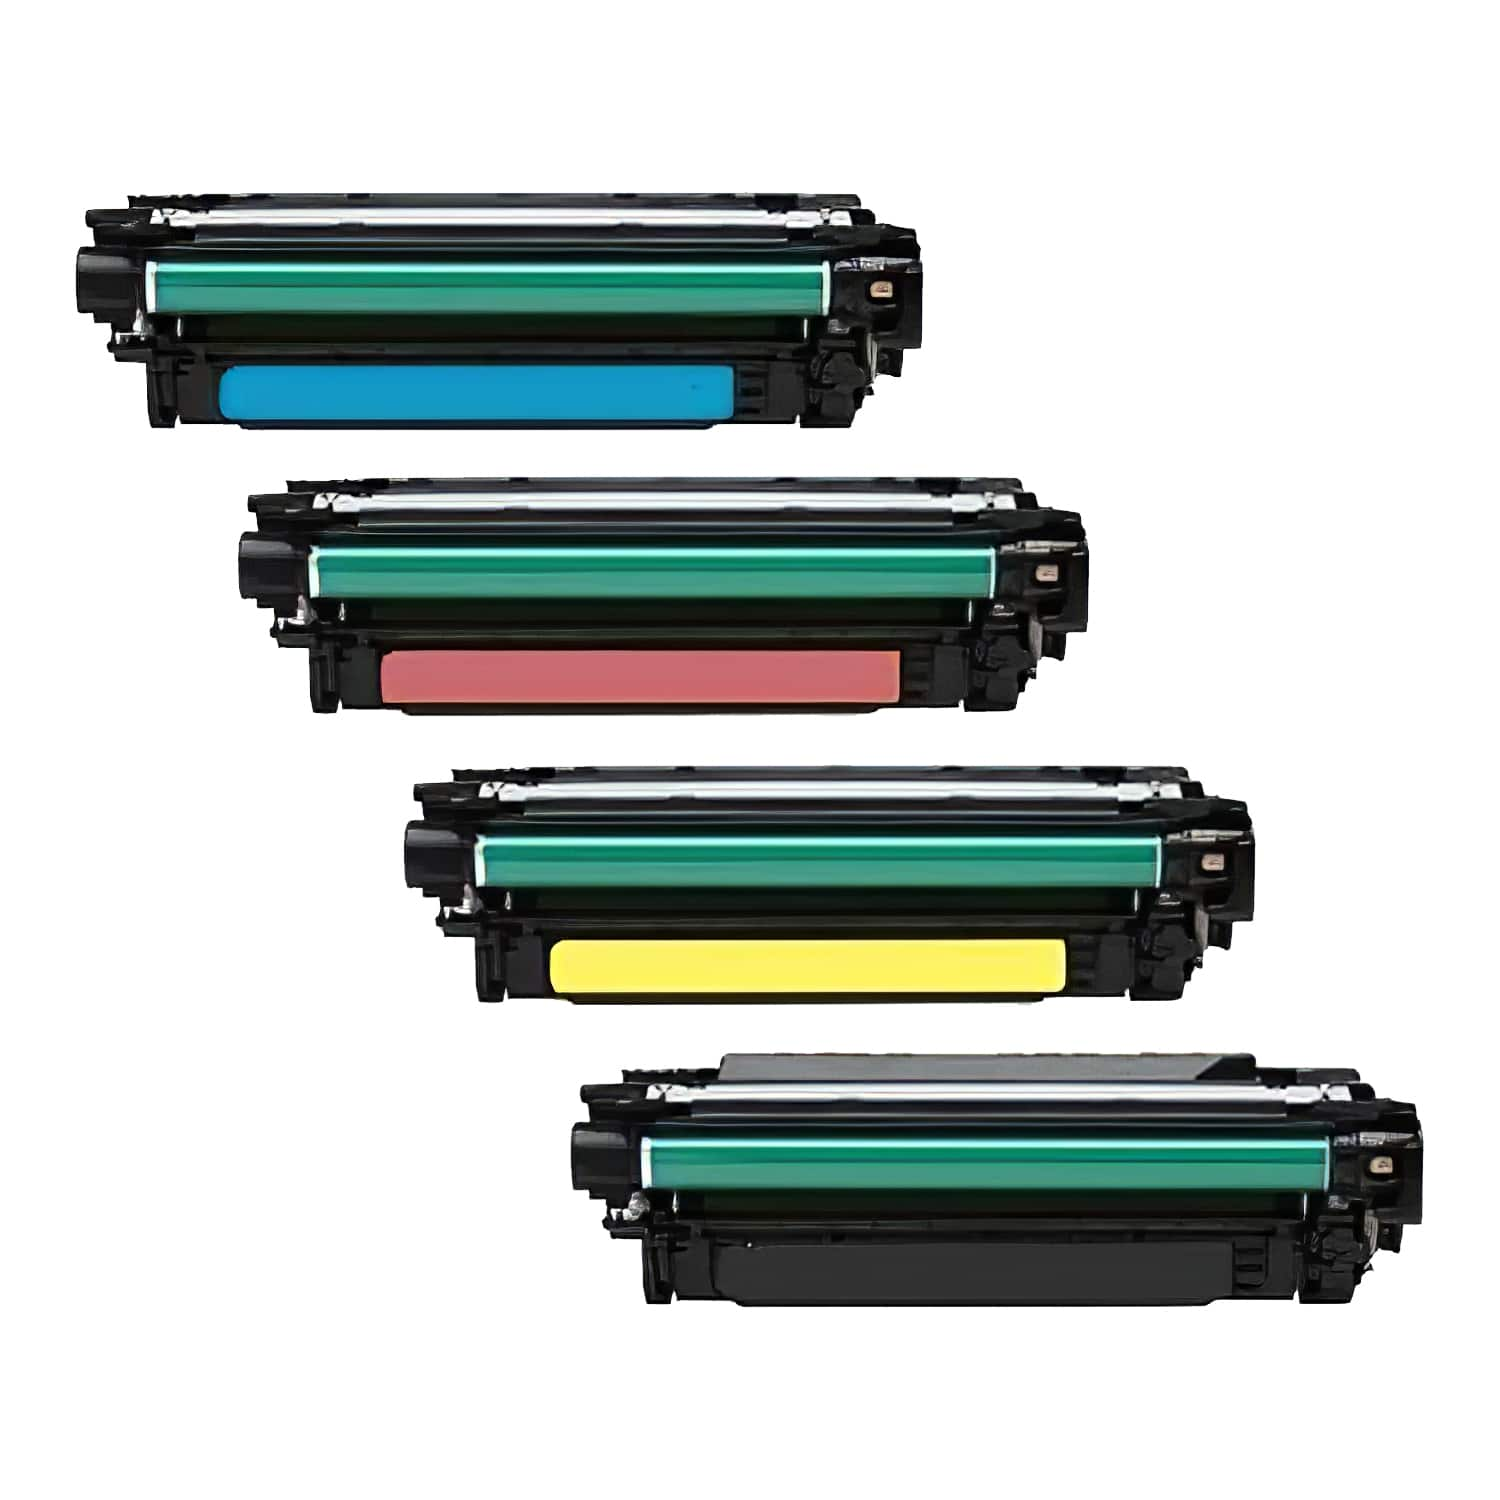 Remanufactured HP Toner Cartridge Bundlpack 507A-507X CMYK High Capacity Pack - 4 Cartridges